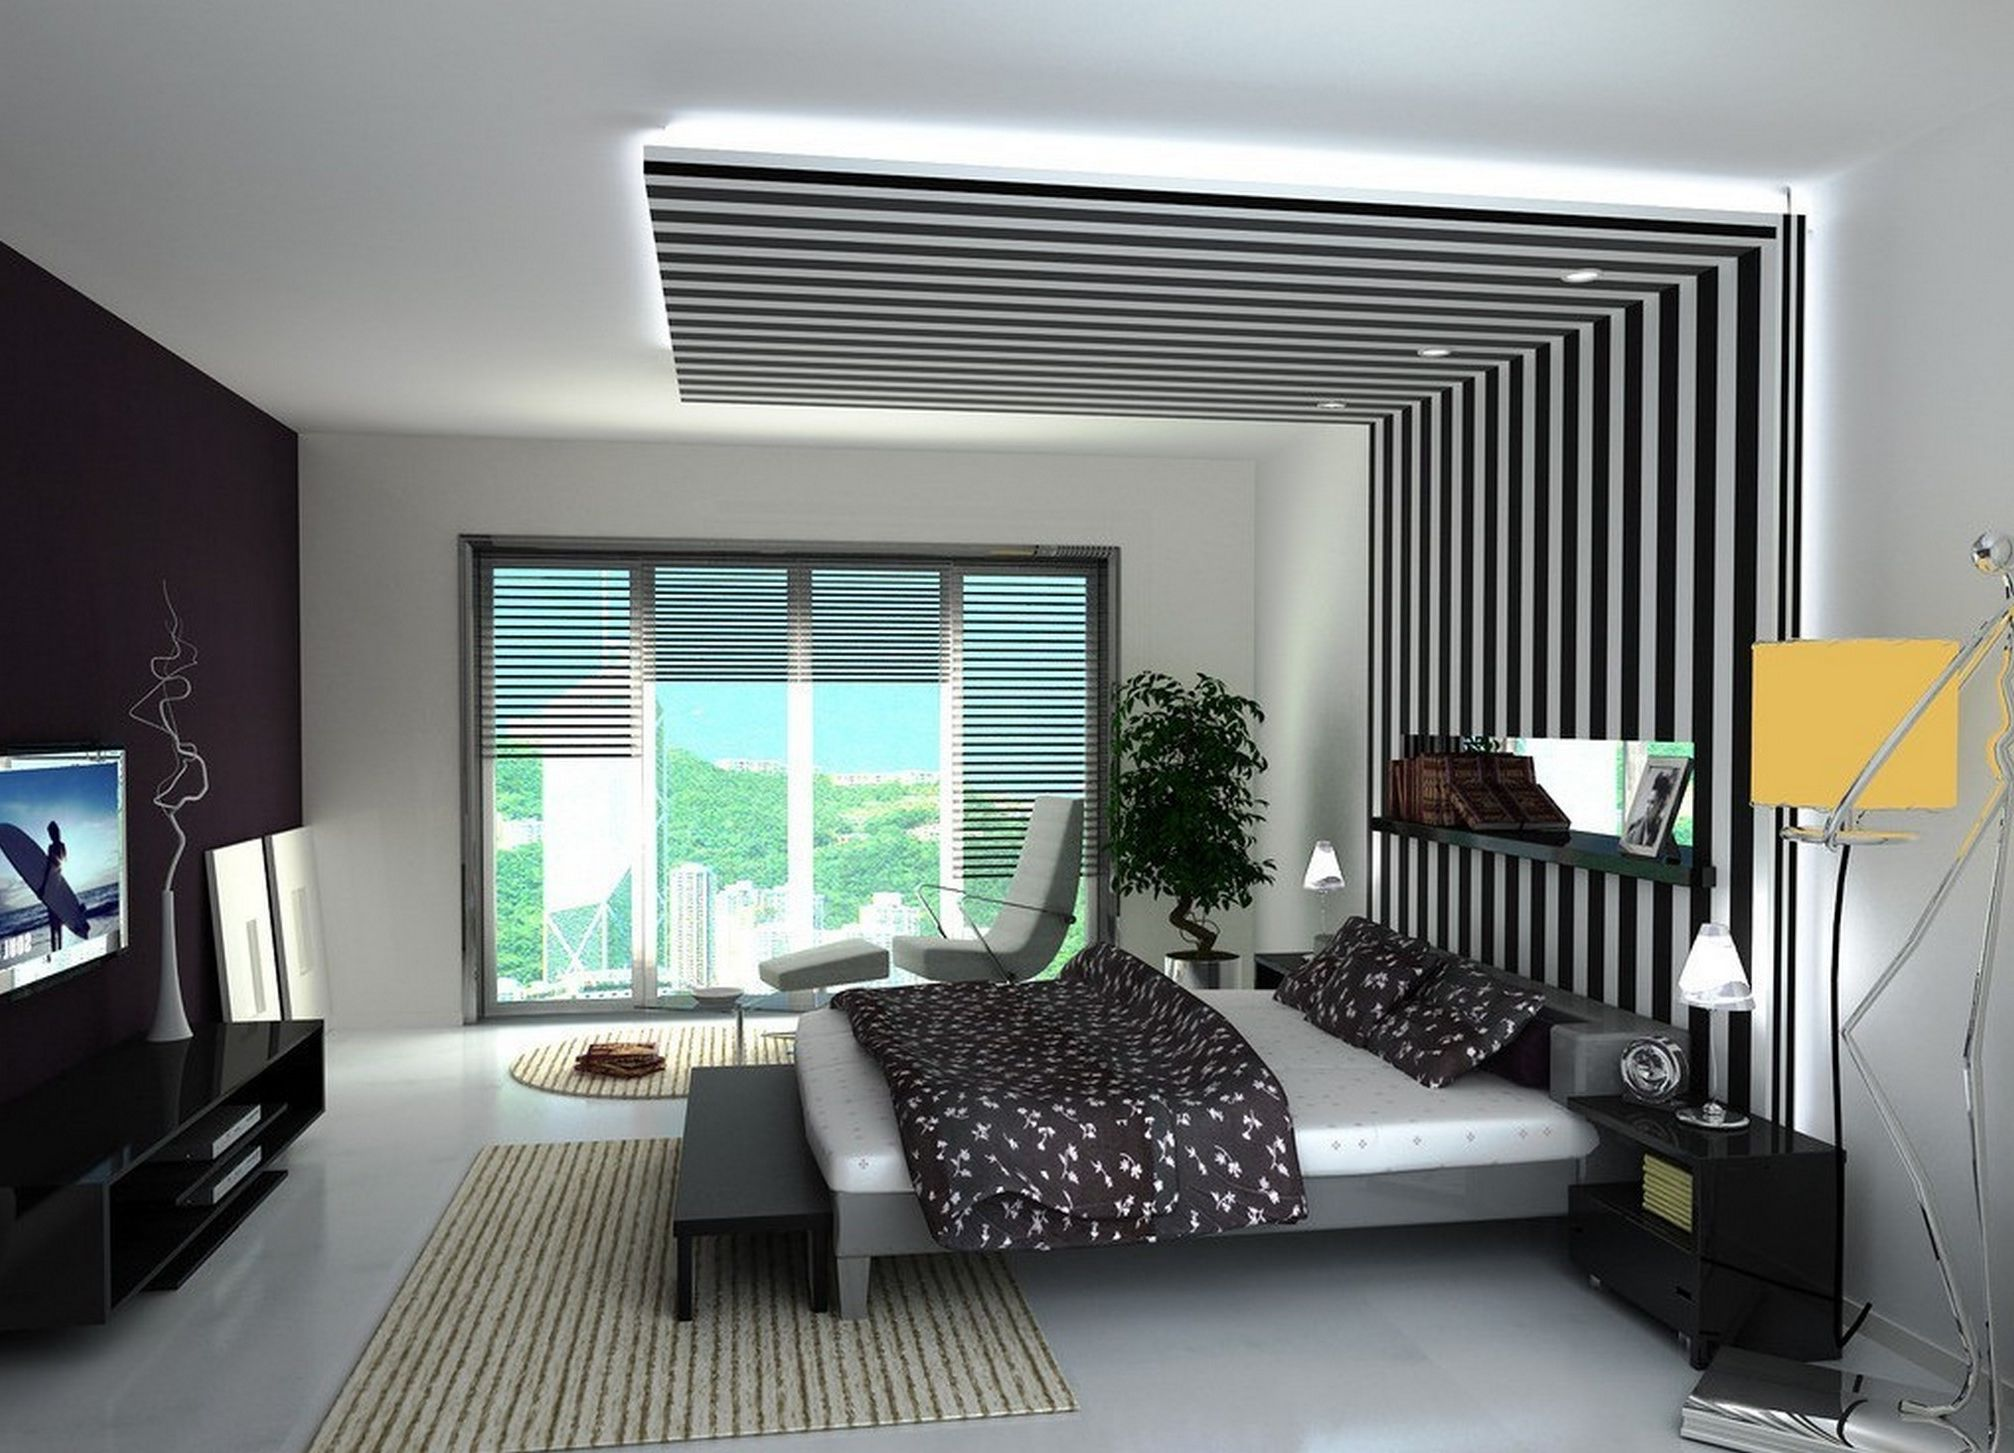 false ceiling designs for bedroom - False Ceiling Design For Bedroom